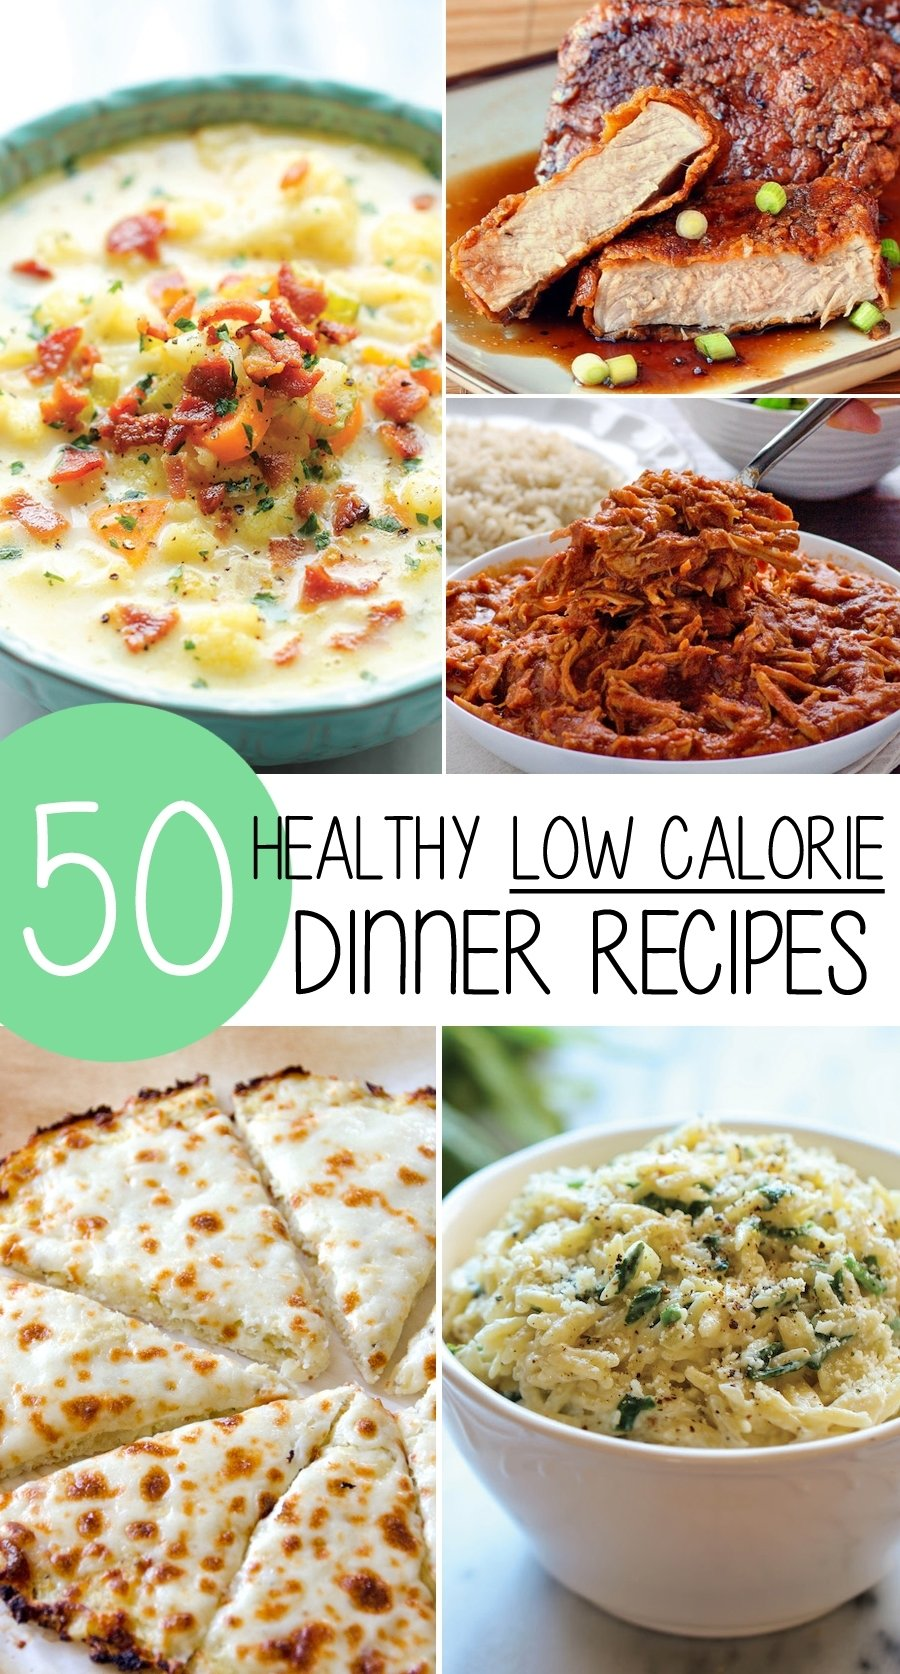 10 Perfect Fast And Healthy Dinner Ideas 50 healthy low calorie weight loss dinner recipes 3 2020